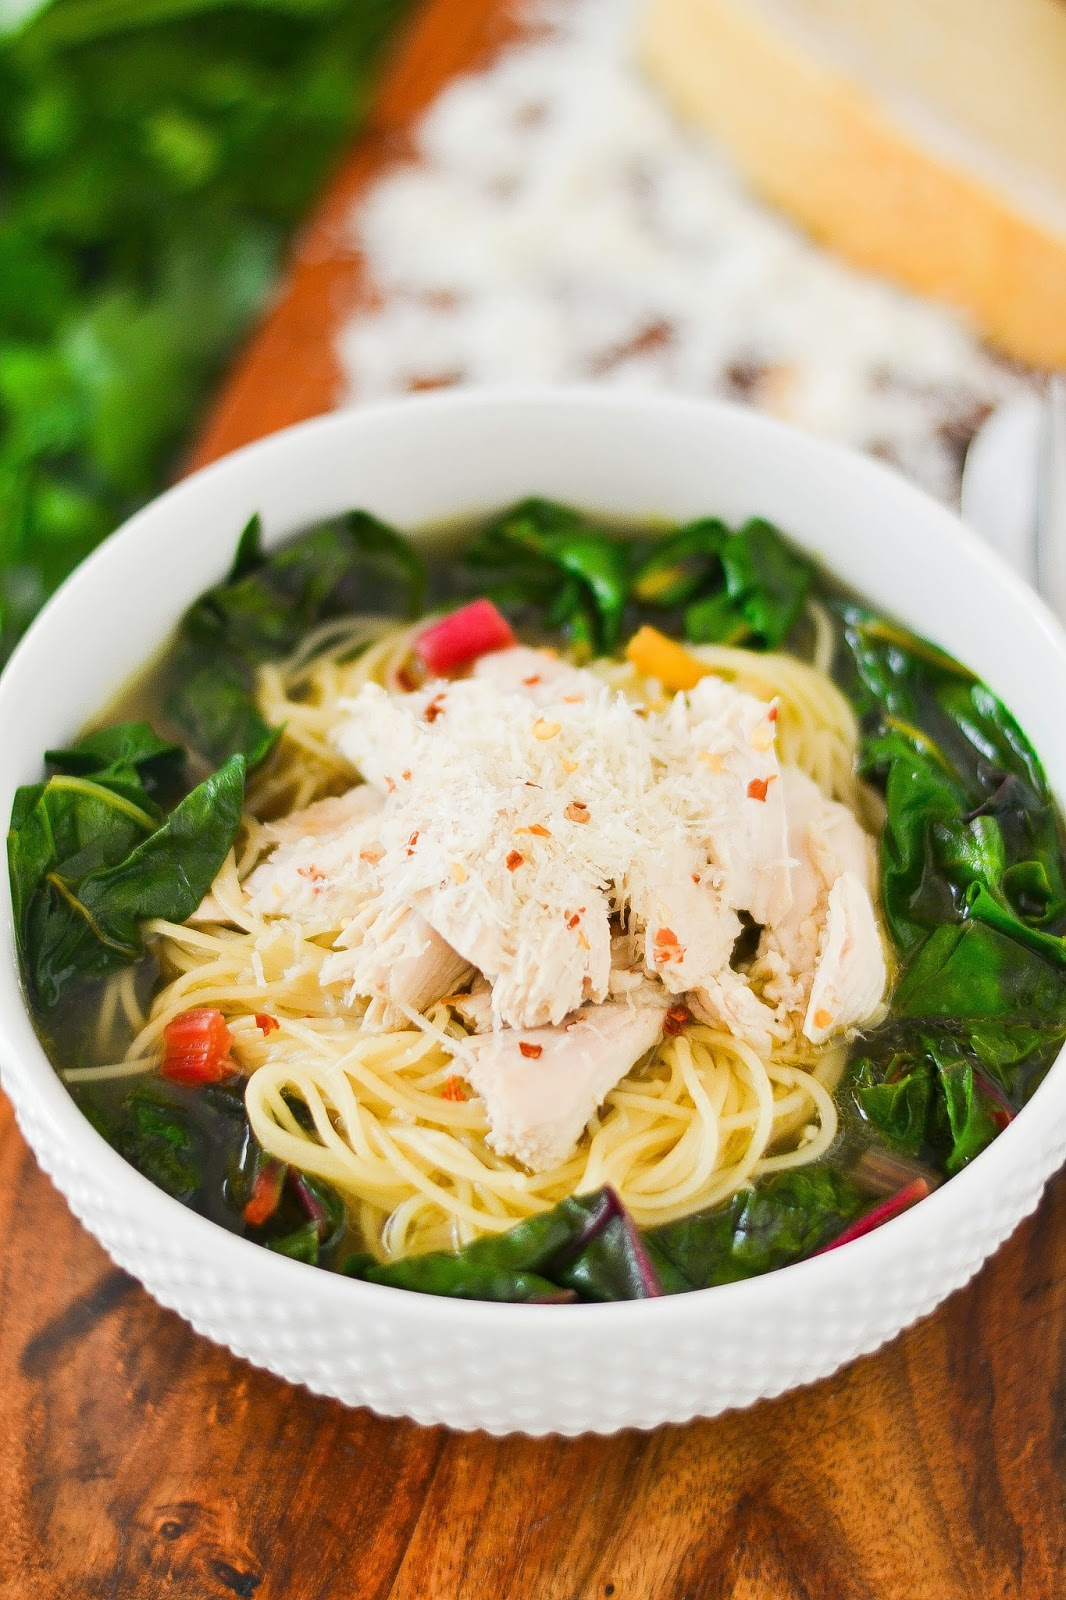 Italian Swiss Chard and Chicken Noodle Bowl 1 - retouched